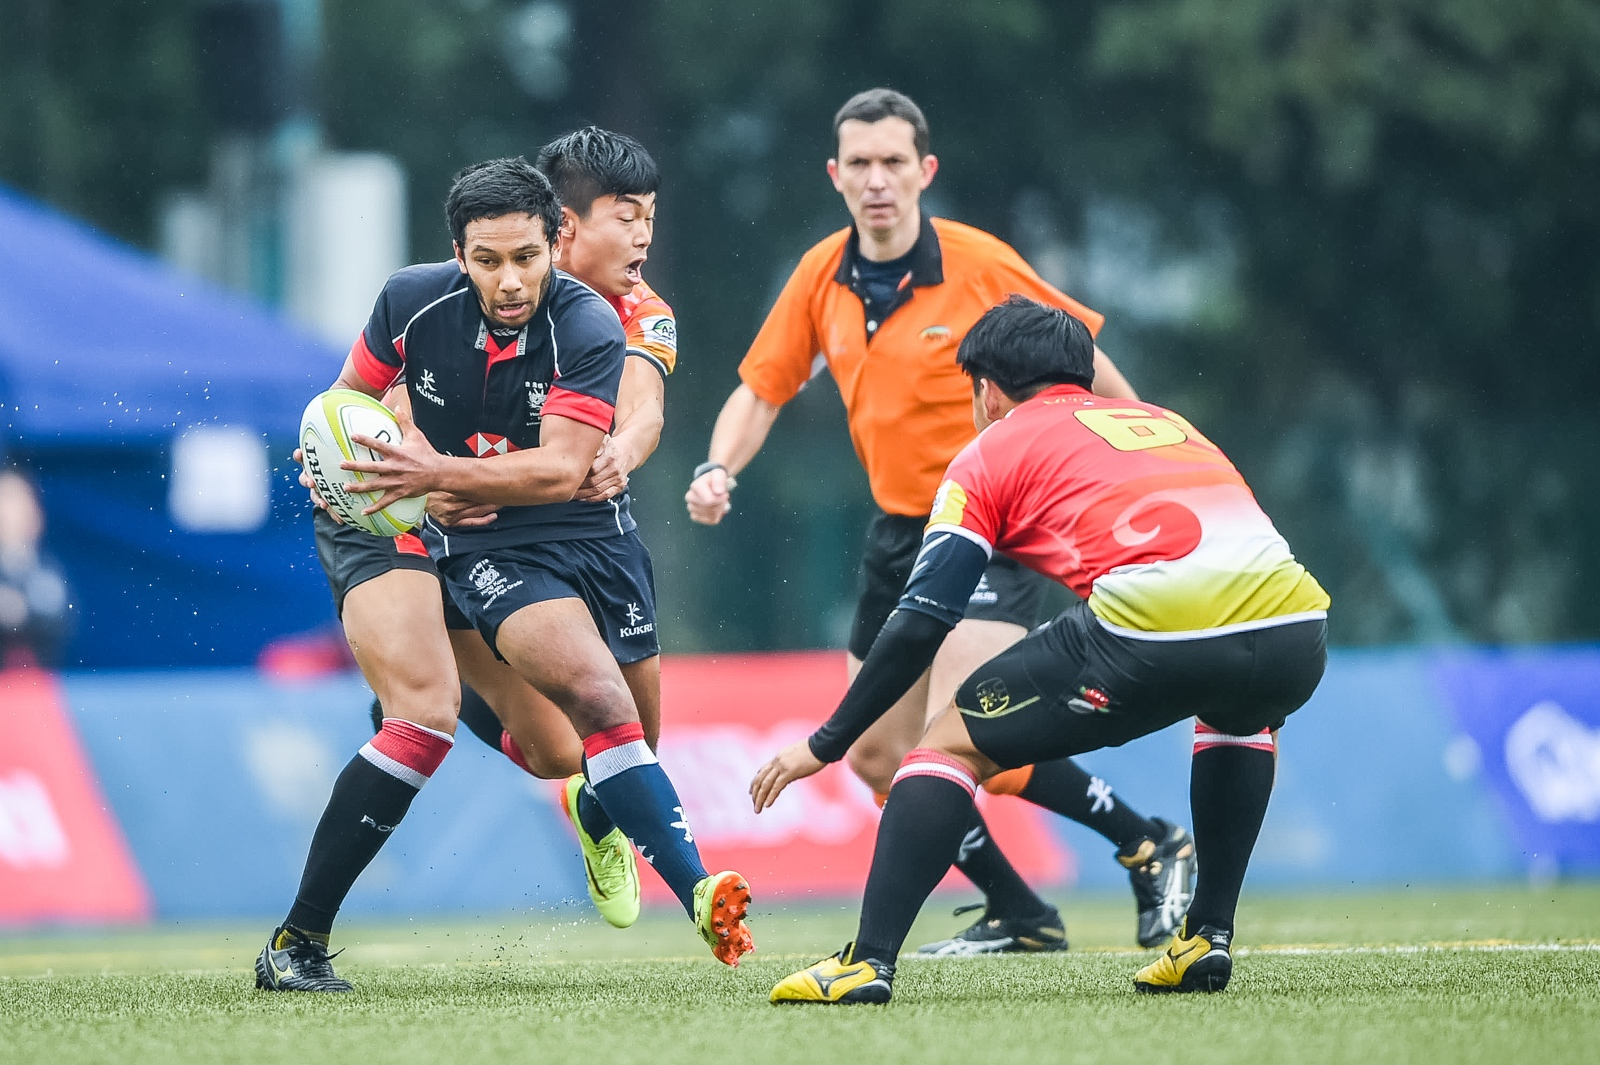 805a23726c2b Hong Kong sevens teams out for podium finishes